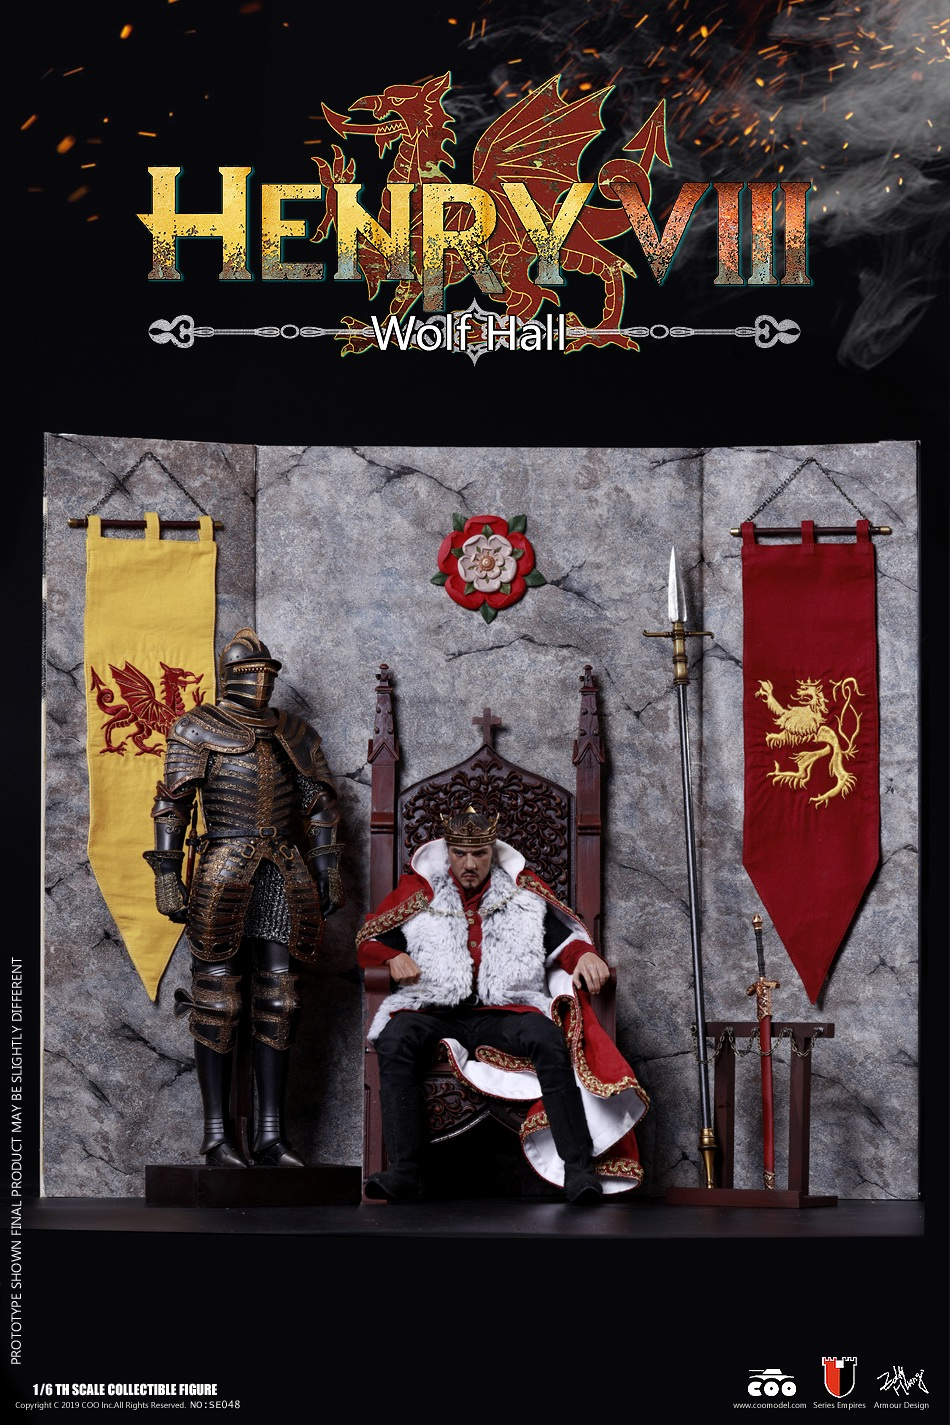 CooModel - NEW PRODUCT: COOMODEL: 1 / 6 alloy die-casting empire series - Henry VIII Lions version of the red dragon version of the Tudor version of the Wolf Hall scene 00374711